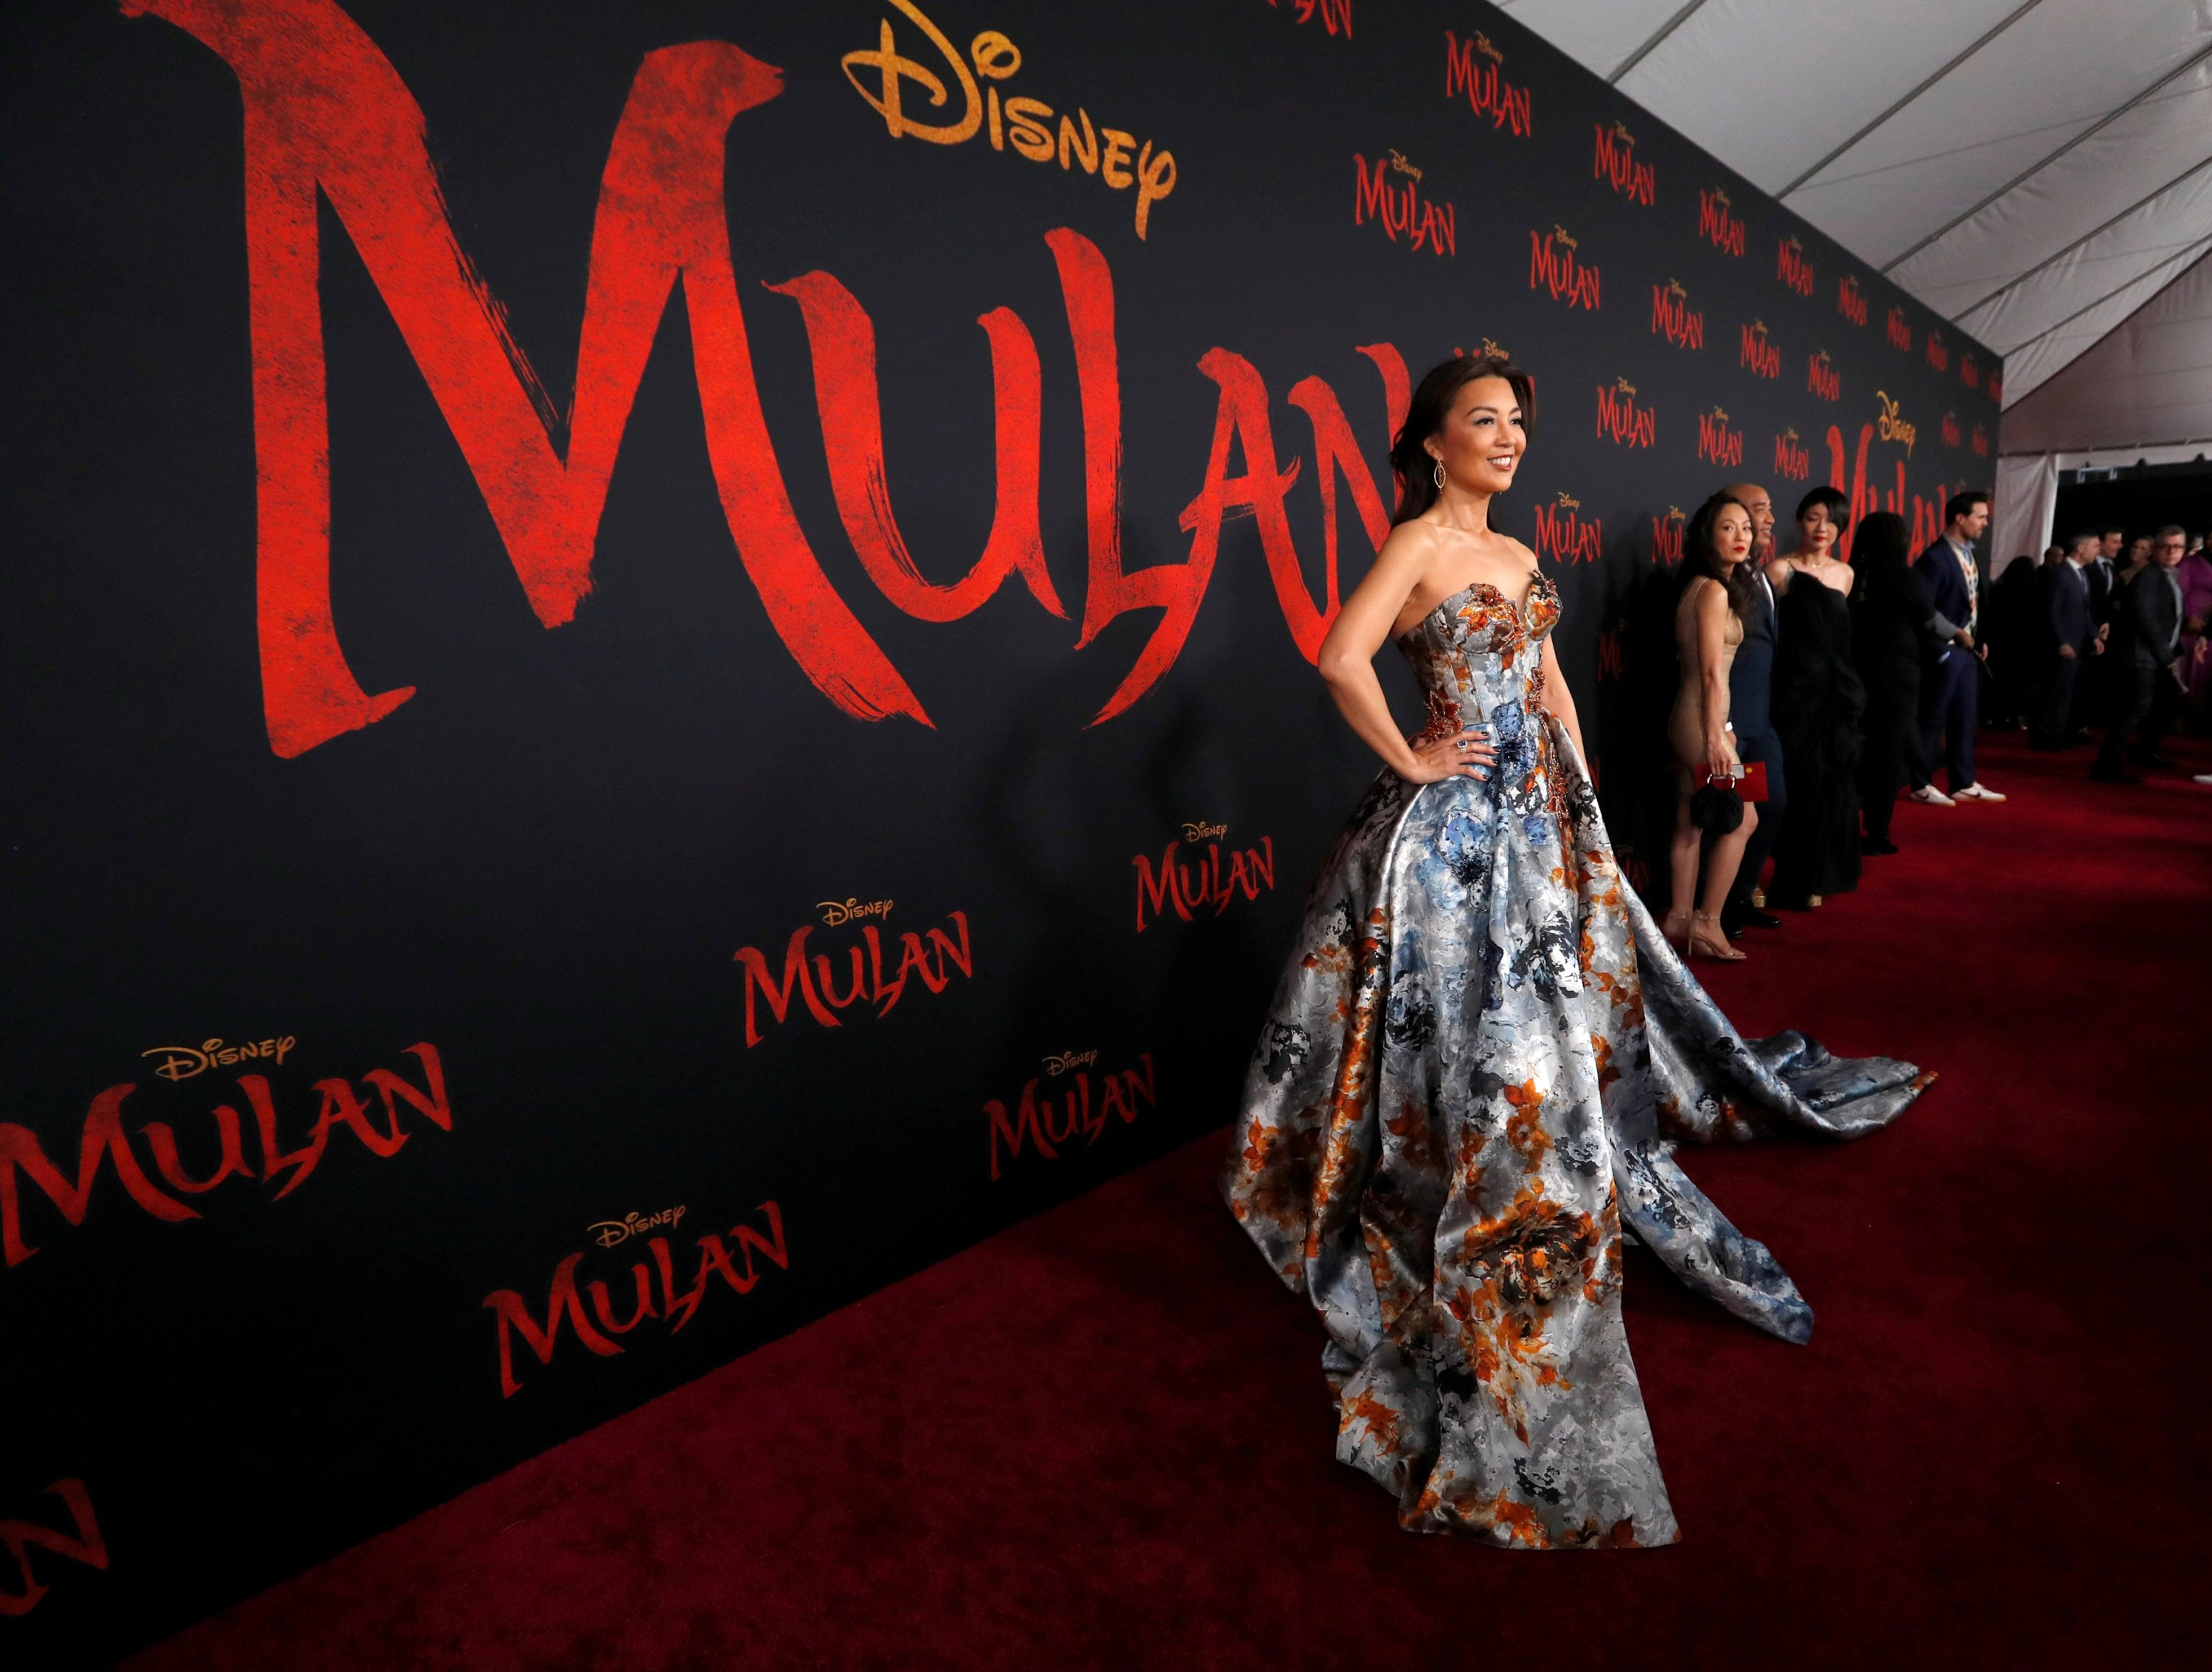 Film Mulan - Mulan On Disney Biggest Changes From The ...